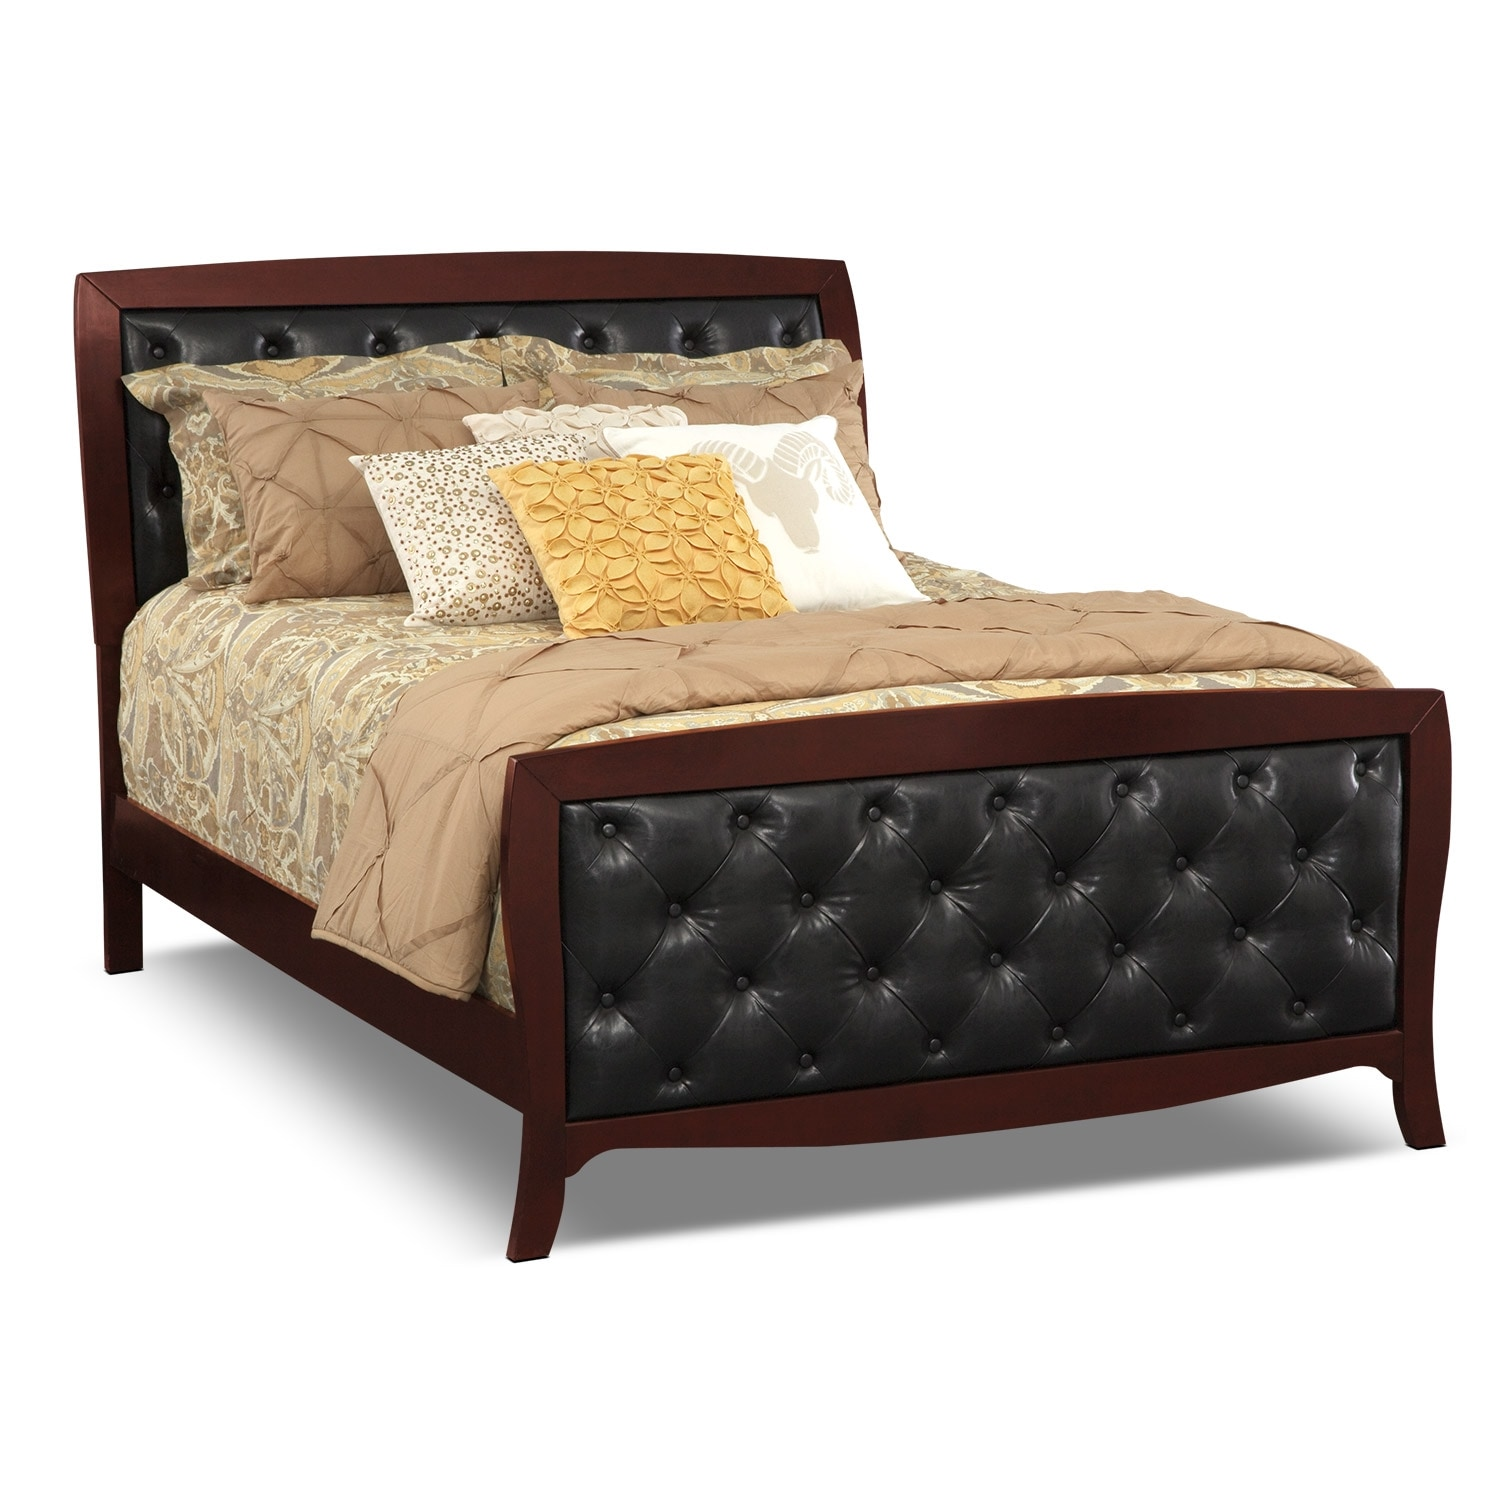 Jaden Queen Tufted Bed - Merlot